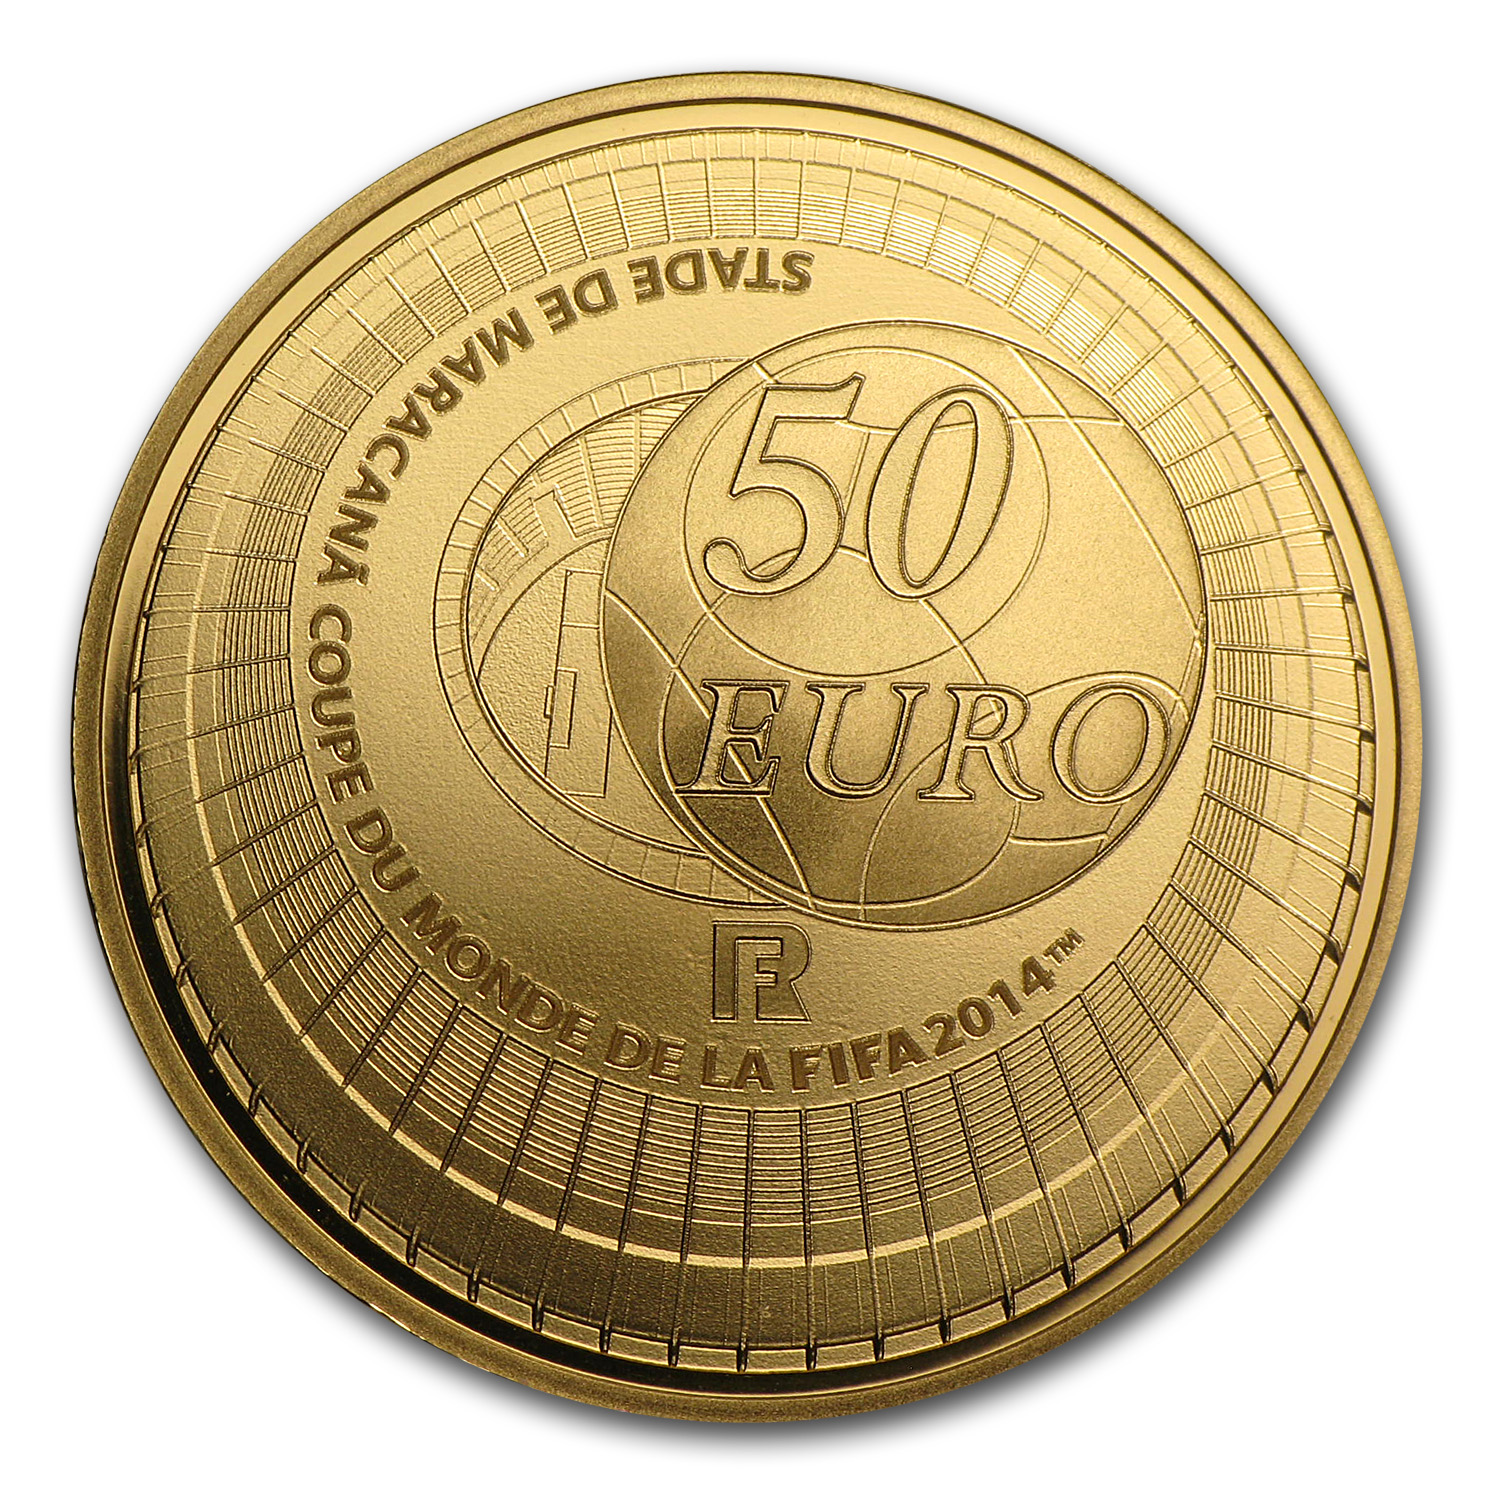 2014 France 50€ 1/4 oz Gold Proof FIFA World Cup